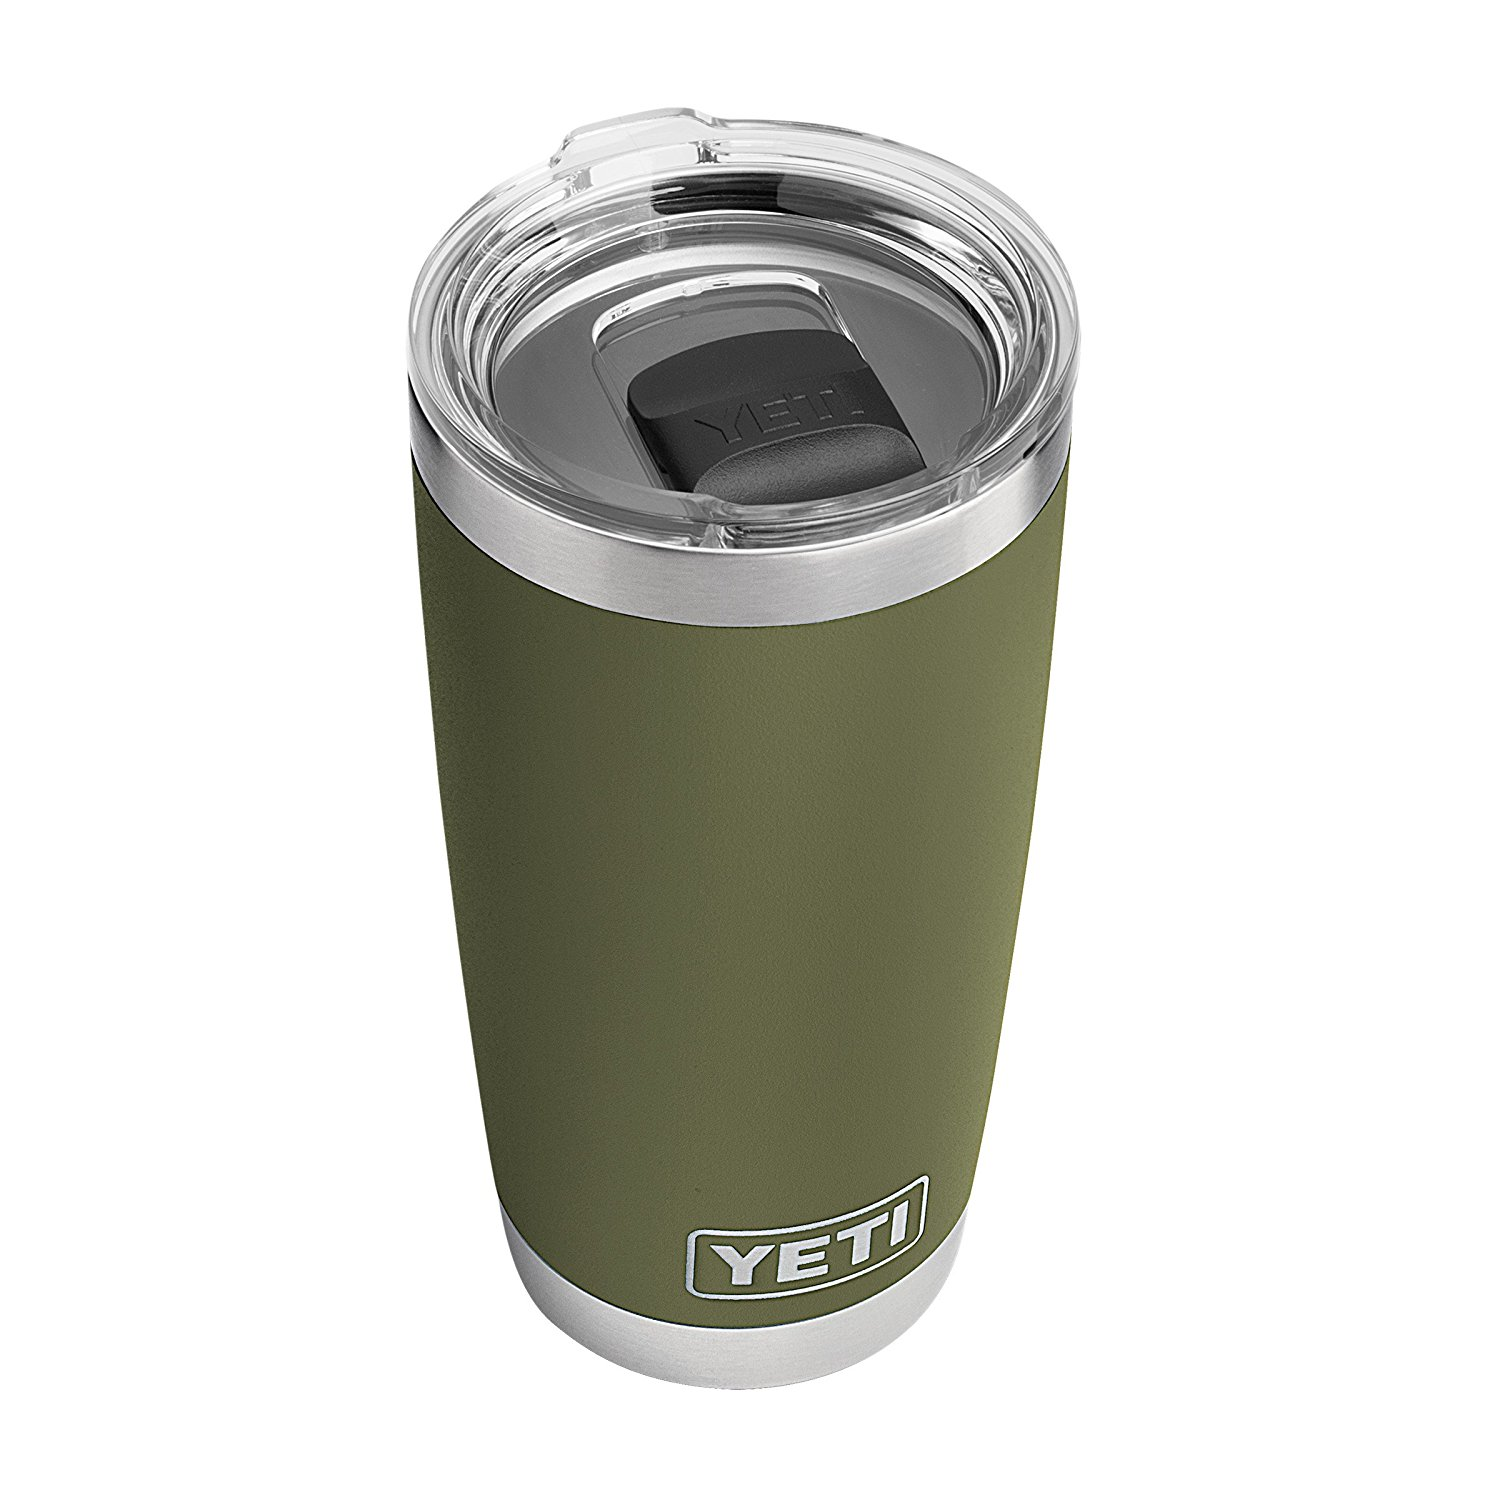 13. Travel Coffee Mug - YETI Rambler 20 oz Stainless Steel Vacuum Insulated Tumbler with MagSlider Lid Available at Amazon for $29.99